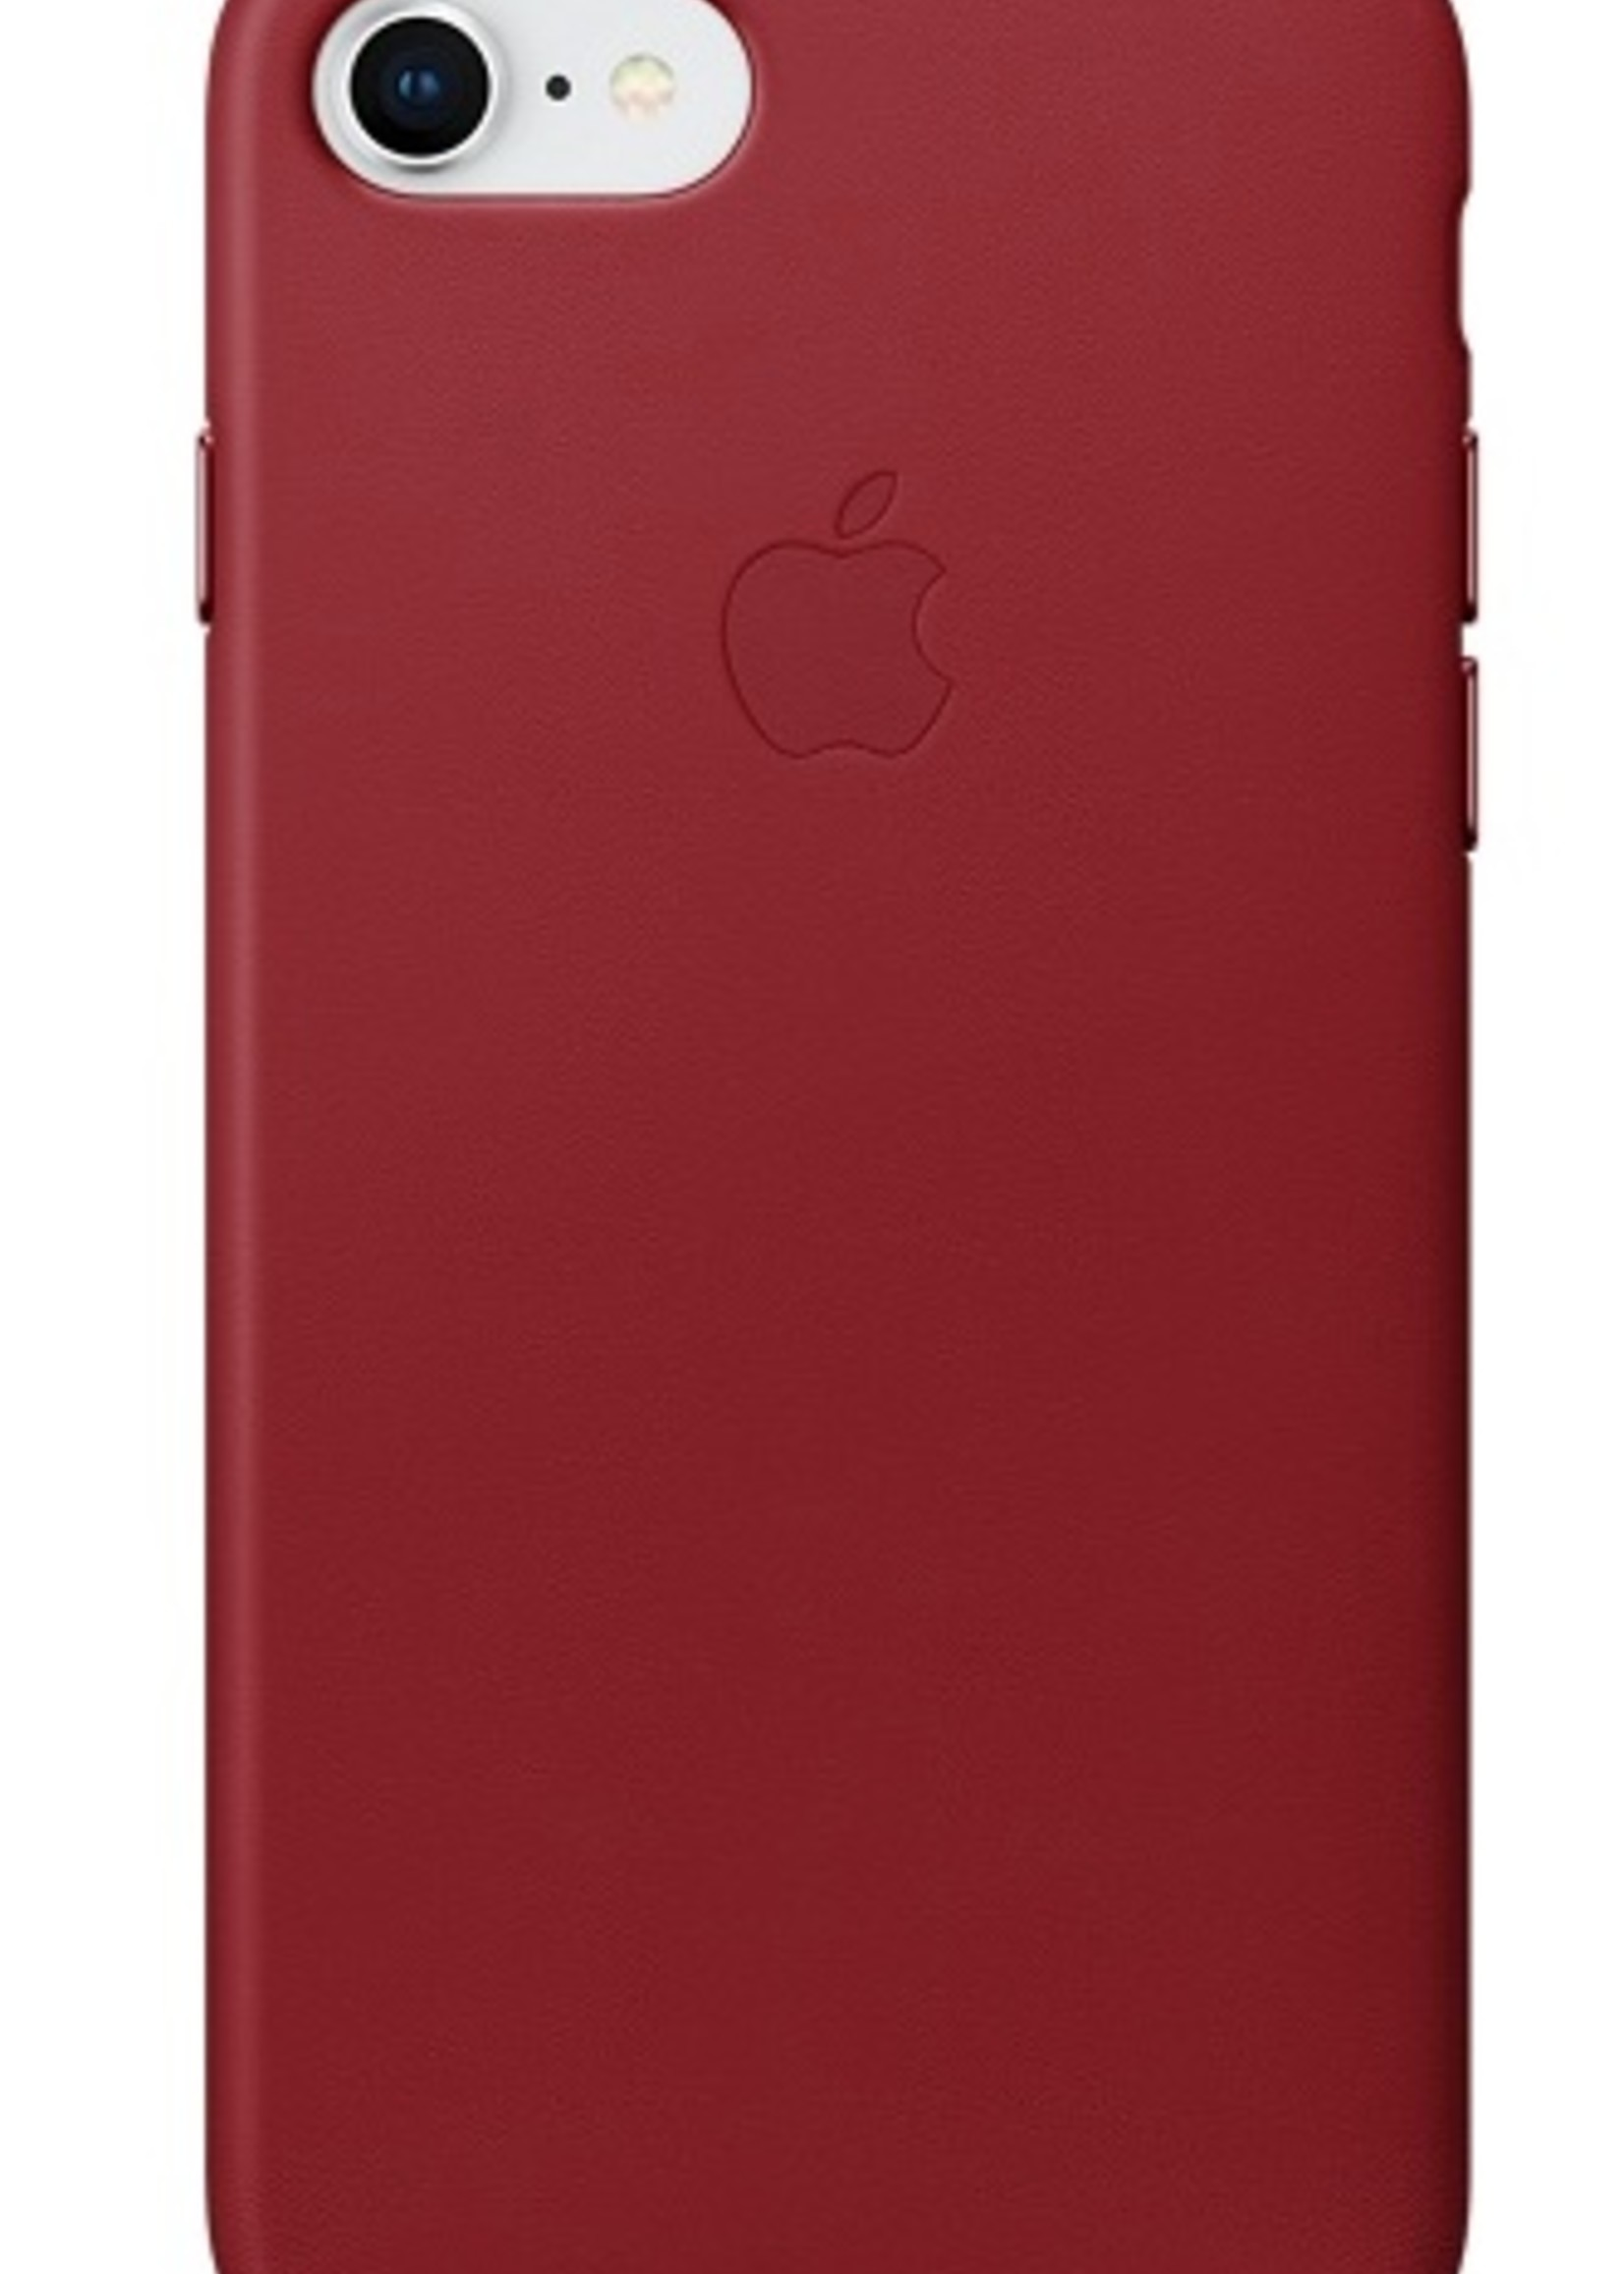 iPhone 8/7 Leather Case - Product Red